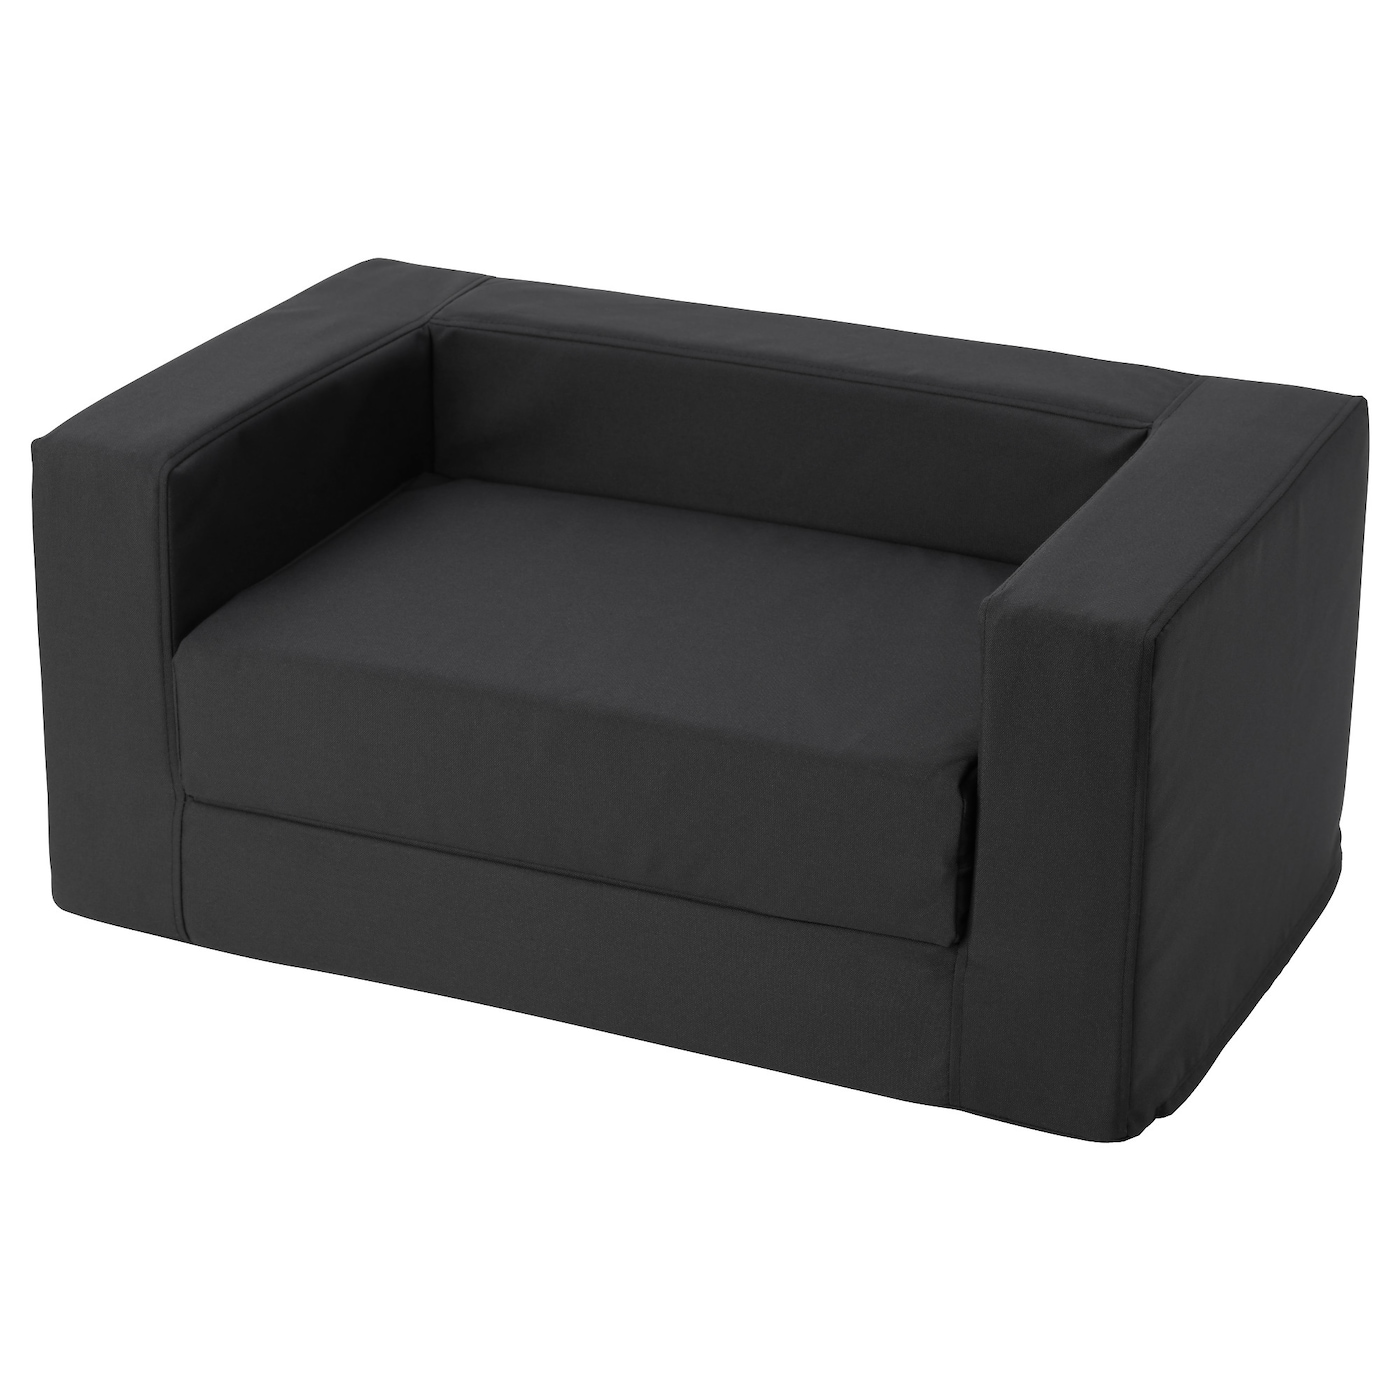 lurvig lit pour chat chien noir 68 x 70 cm ikea. Black Bedroom Furniture Sets. Home Design Ideas